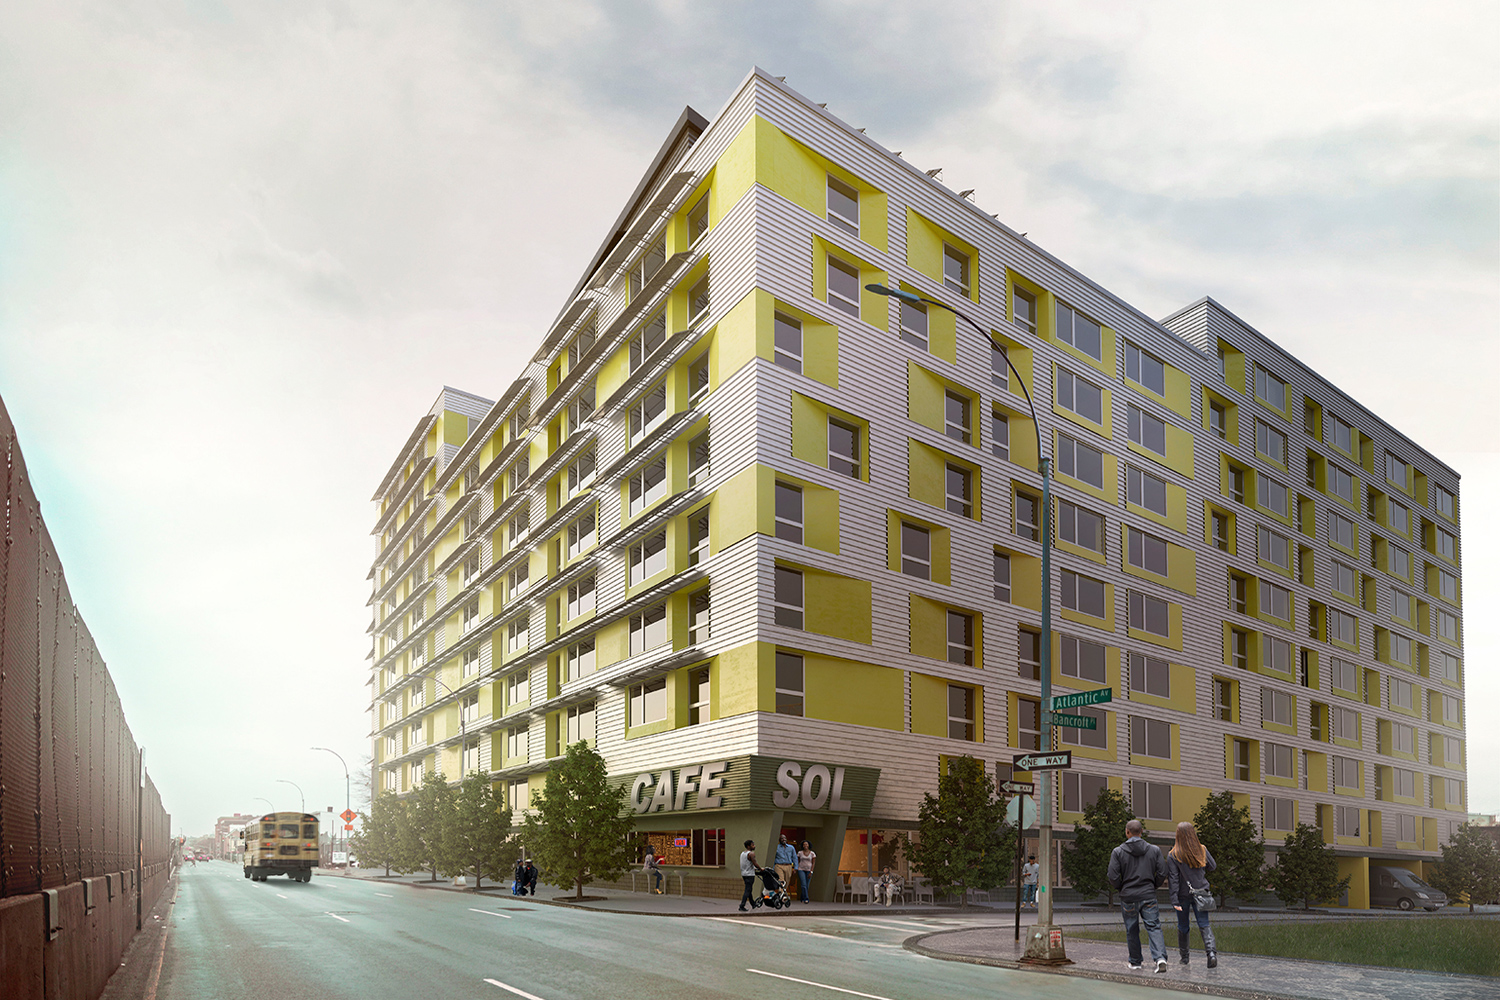 The Parasol | WMBEAffordable Housing Proposal | Brooklyn